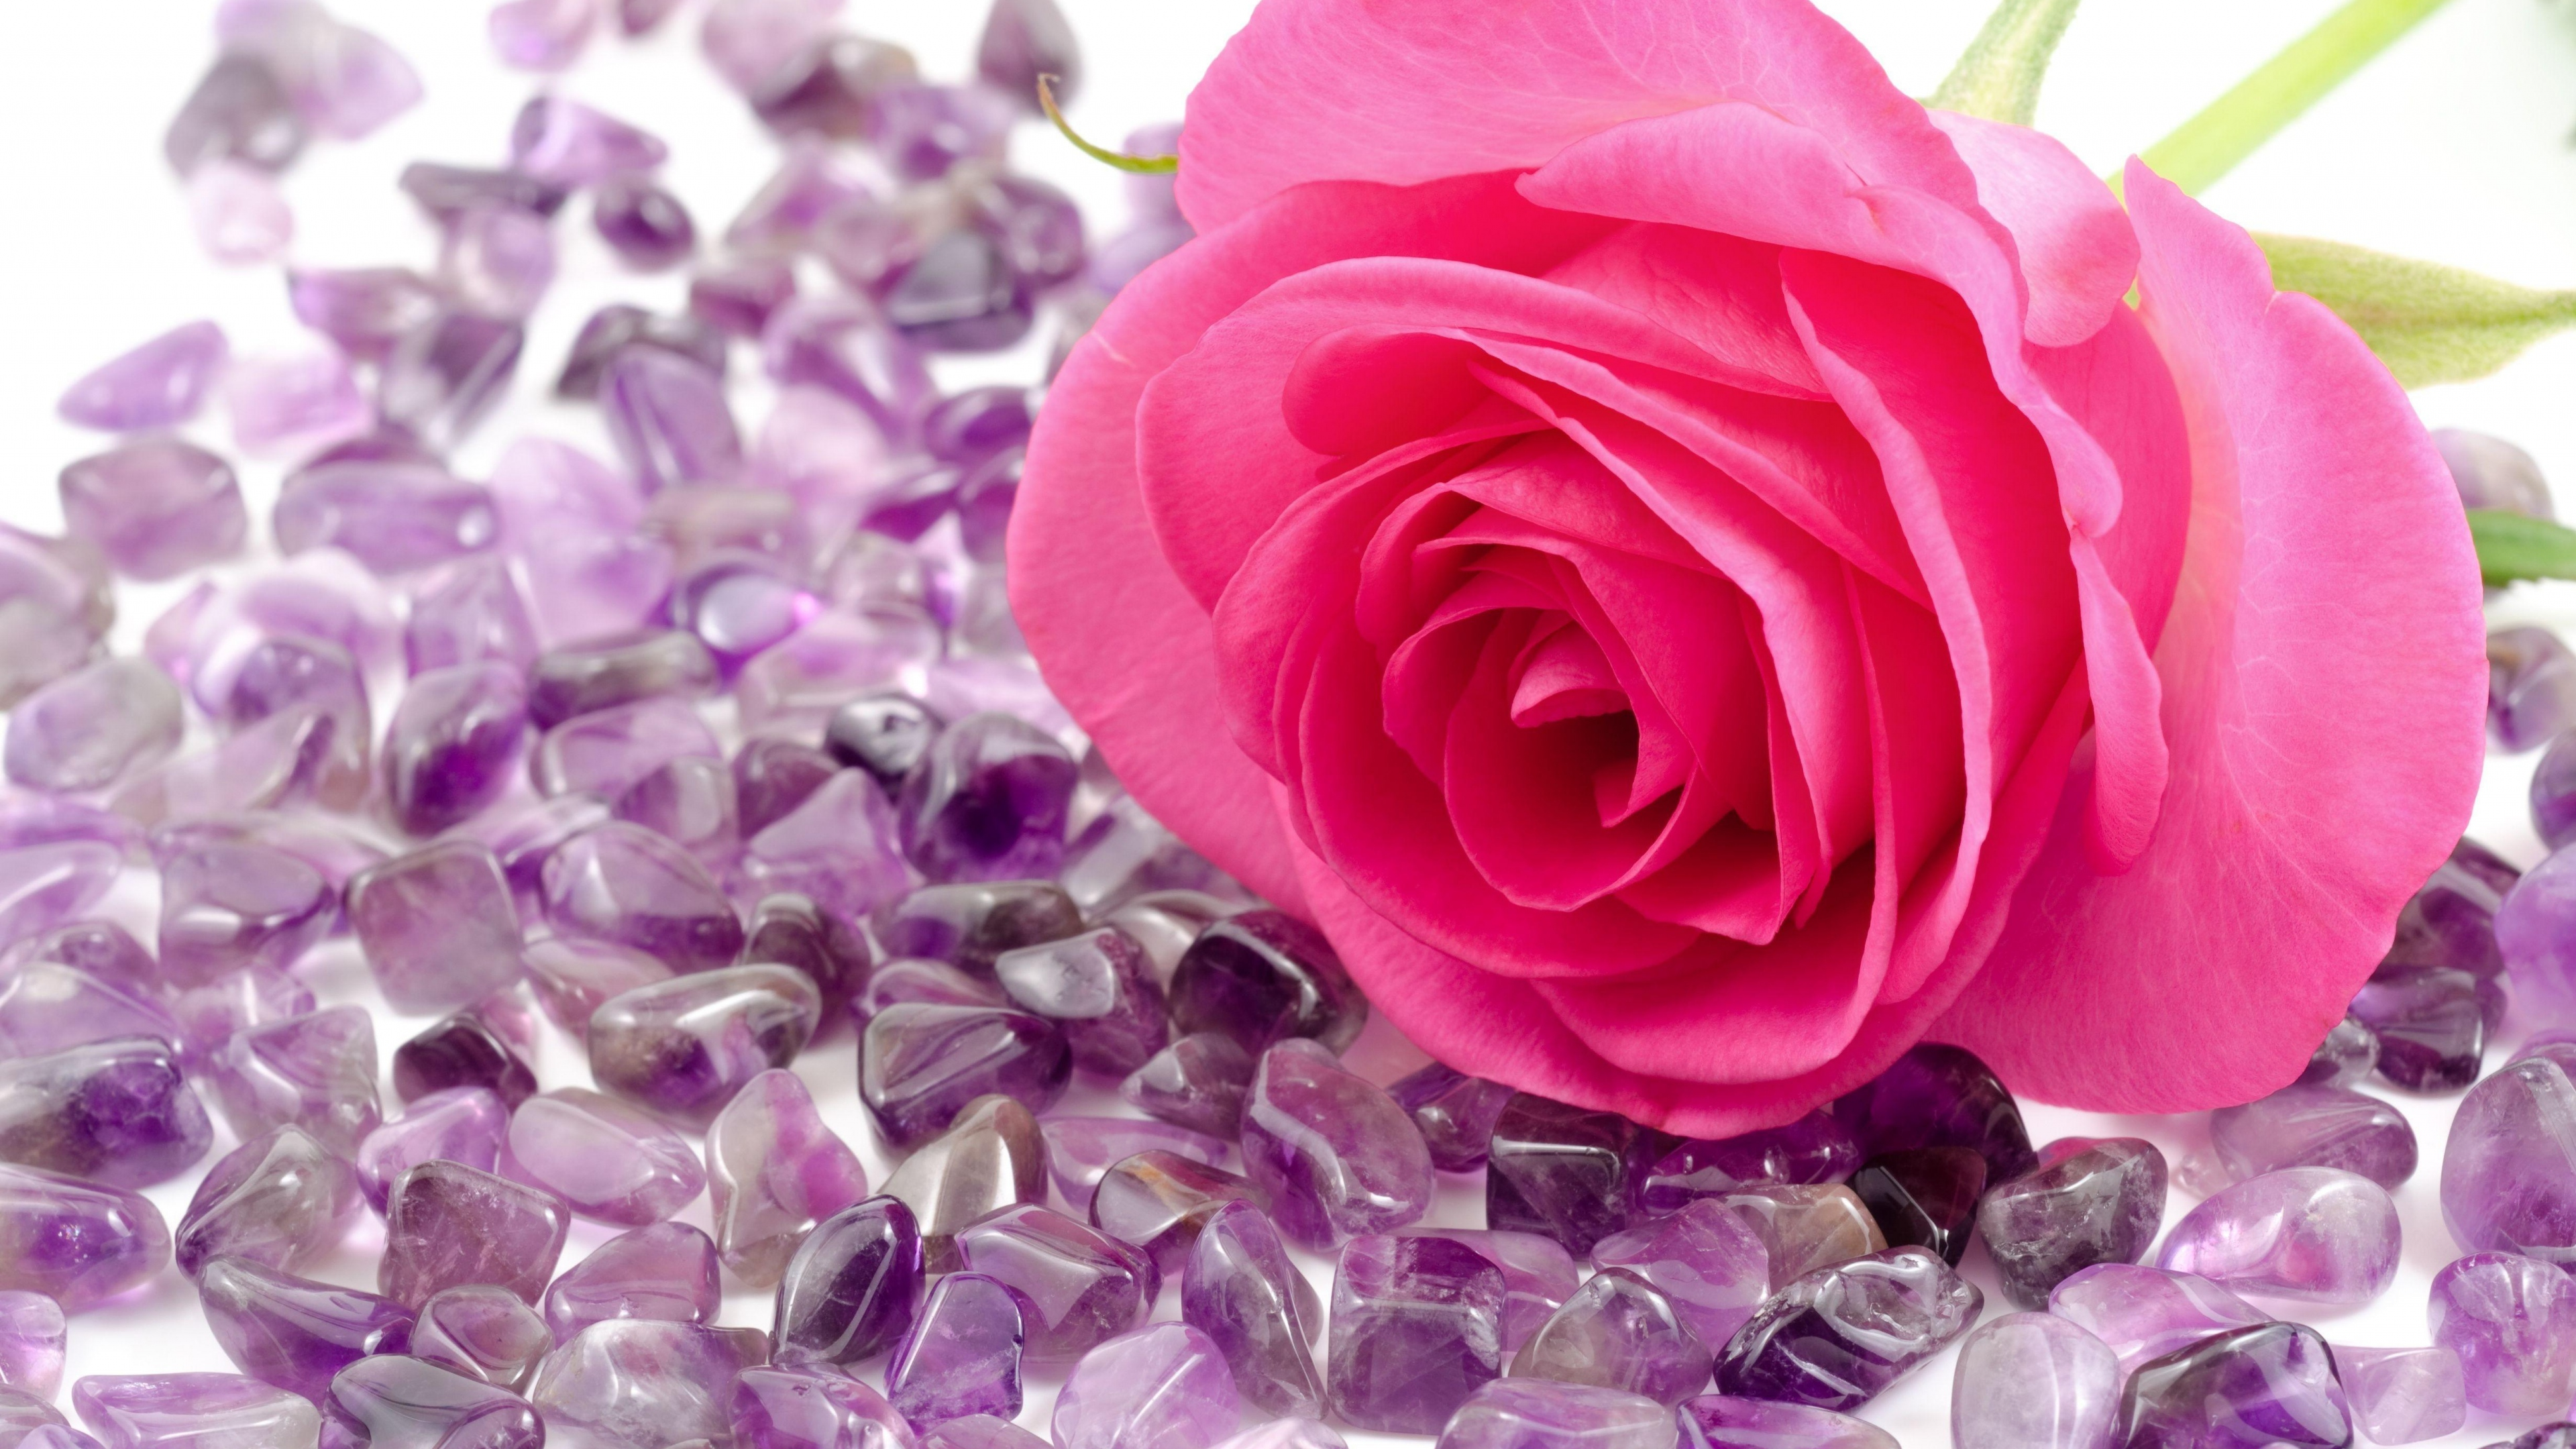 Pink rose on the many beautiful purple stones izmirmasajfo